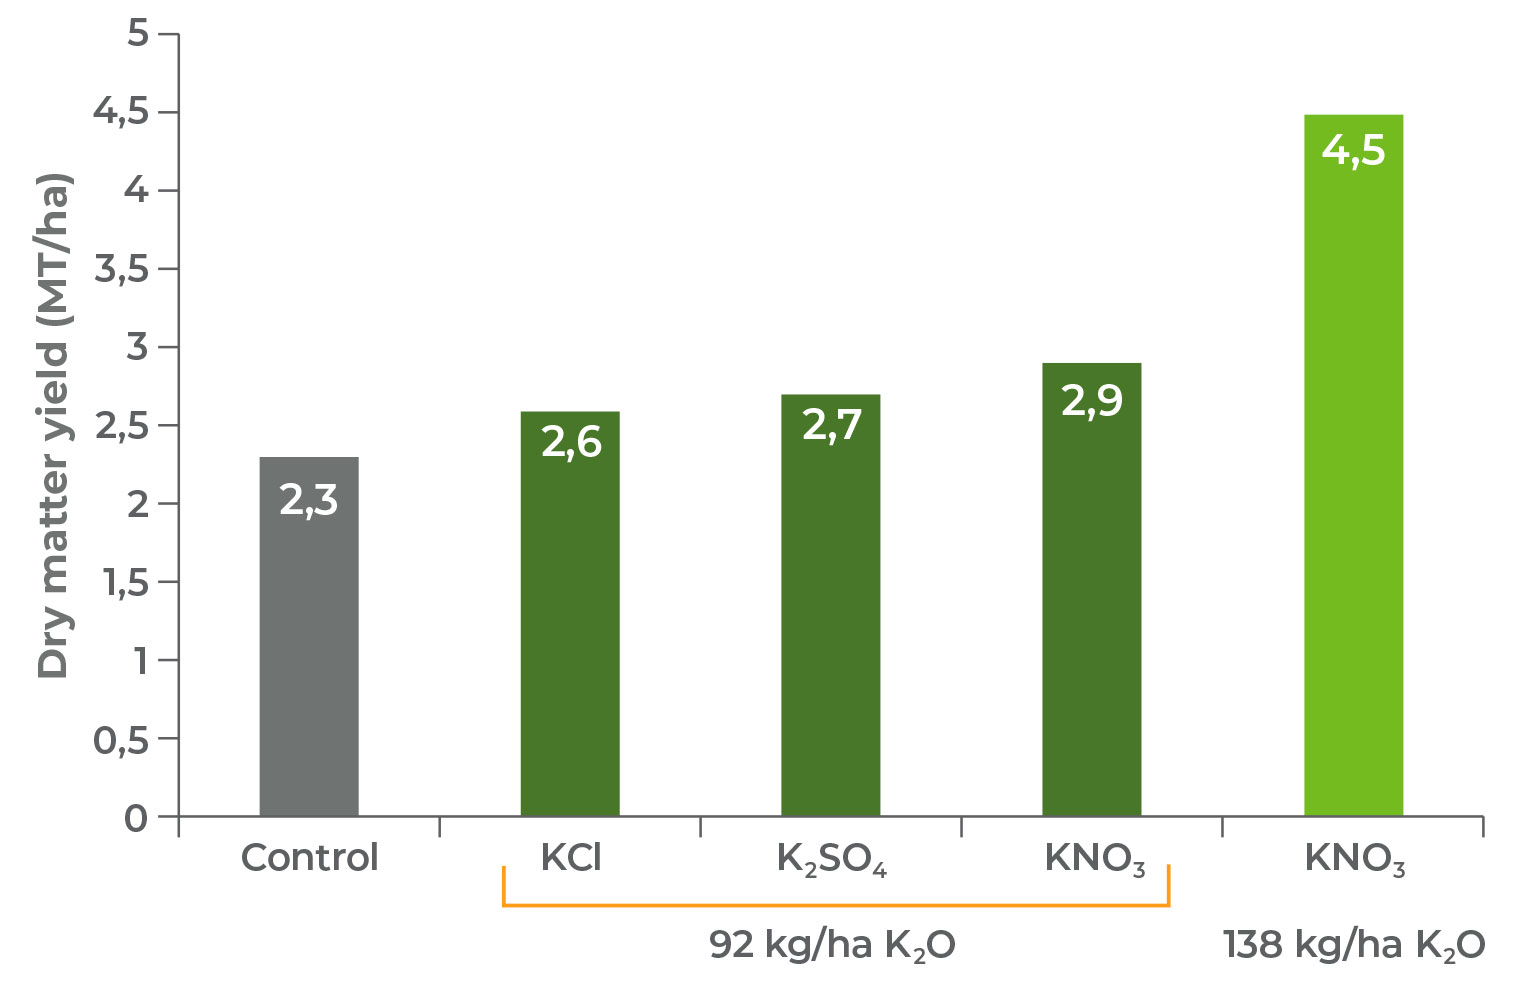 The effect of various K-sources on the dry matter yield of tomatoes.